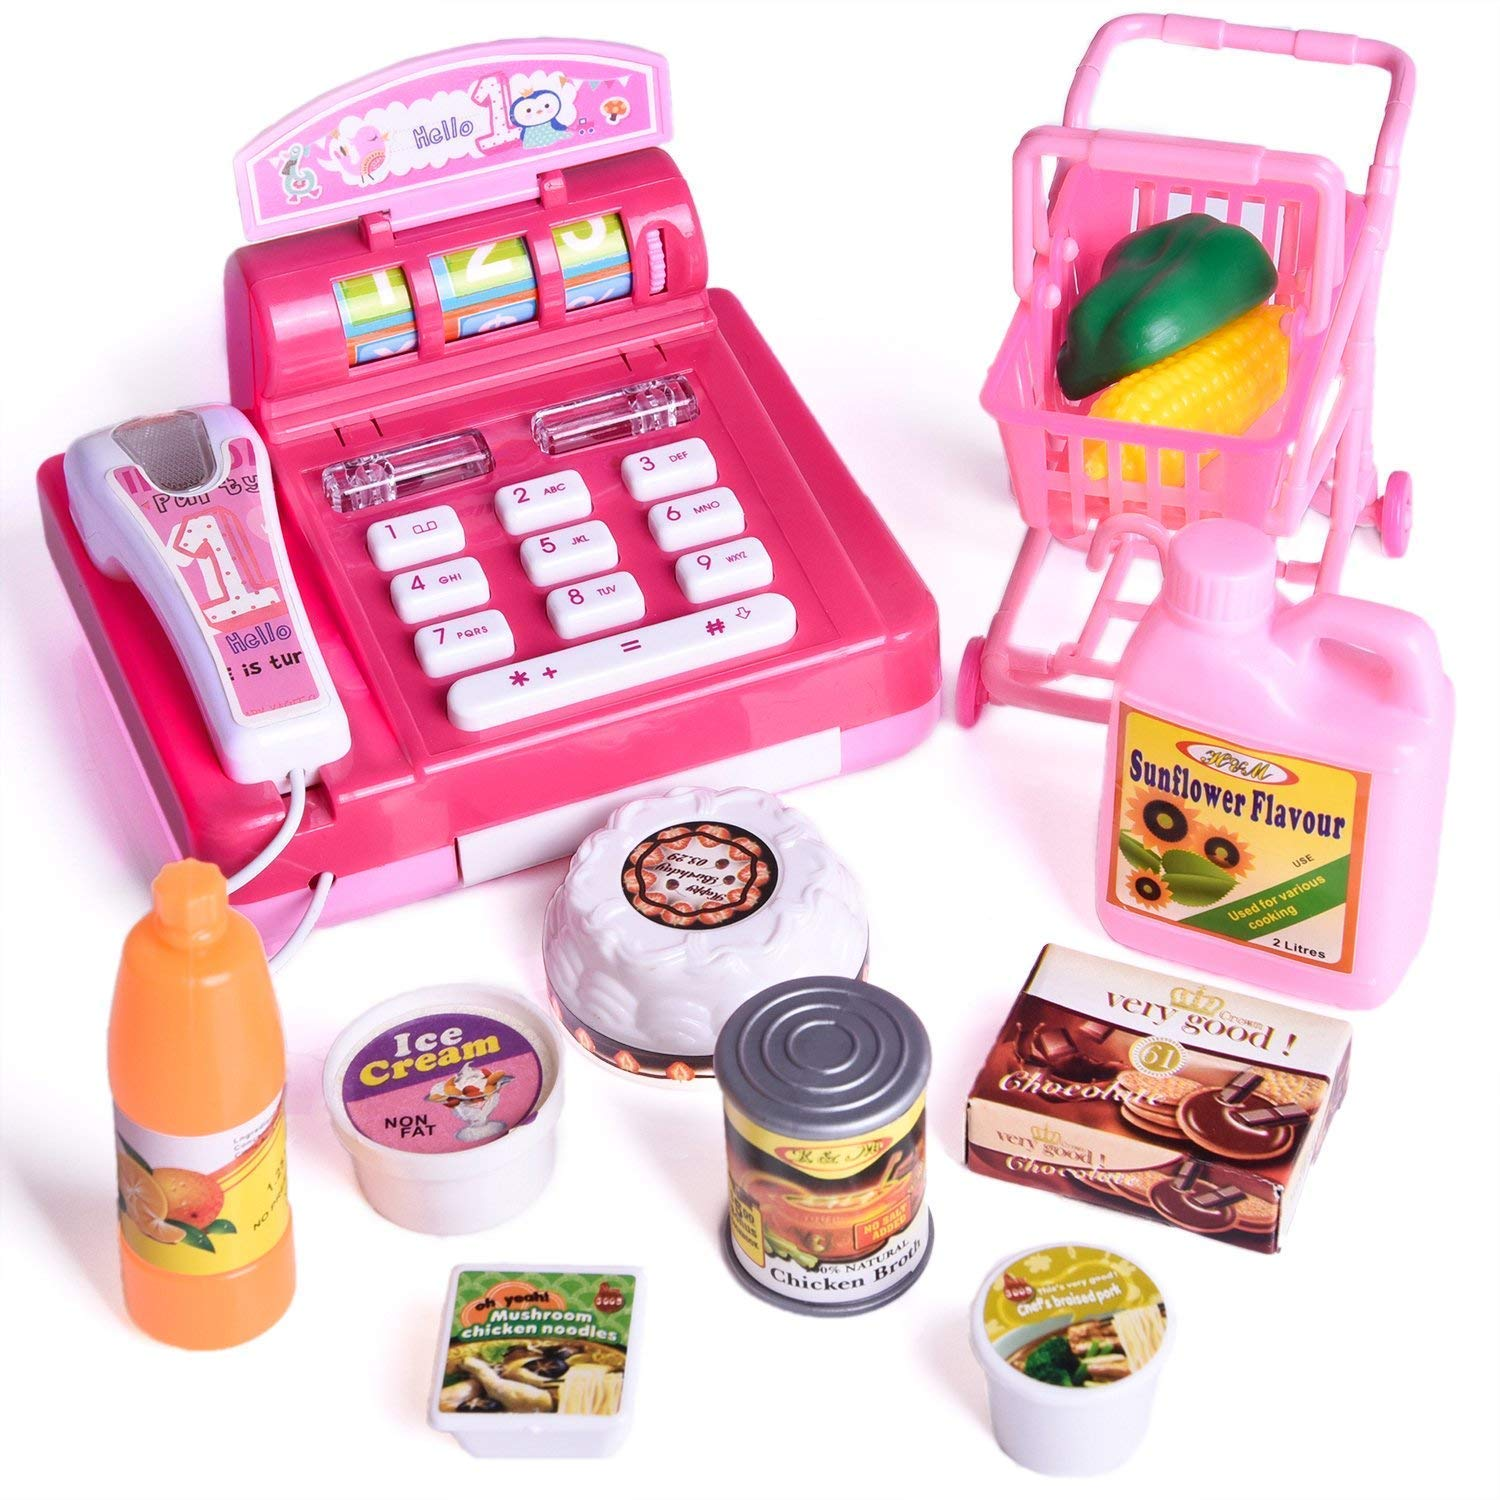 Fun Little Toys Toy Cash Register for Kids with Groceries, Play Food, Shopping Cart, Realistic Actions & Sounds